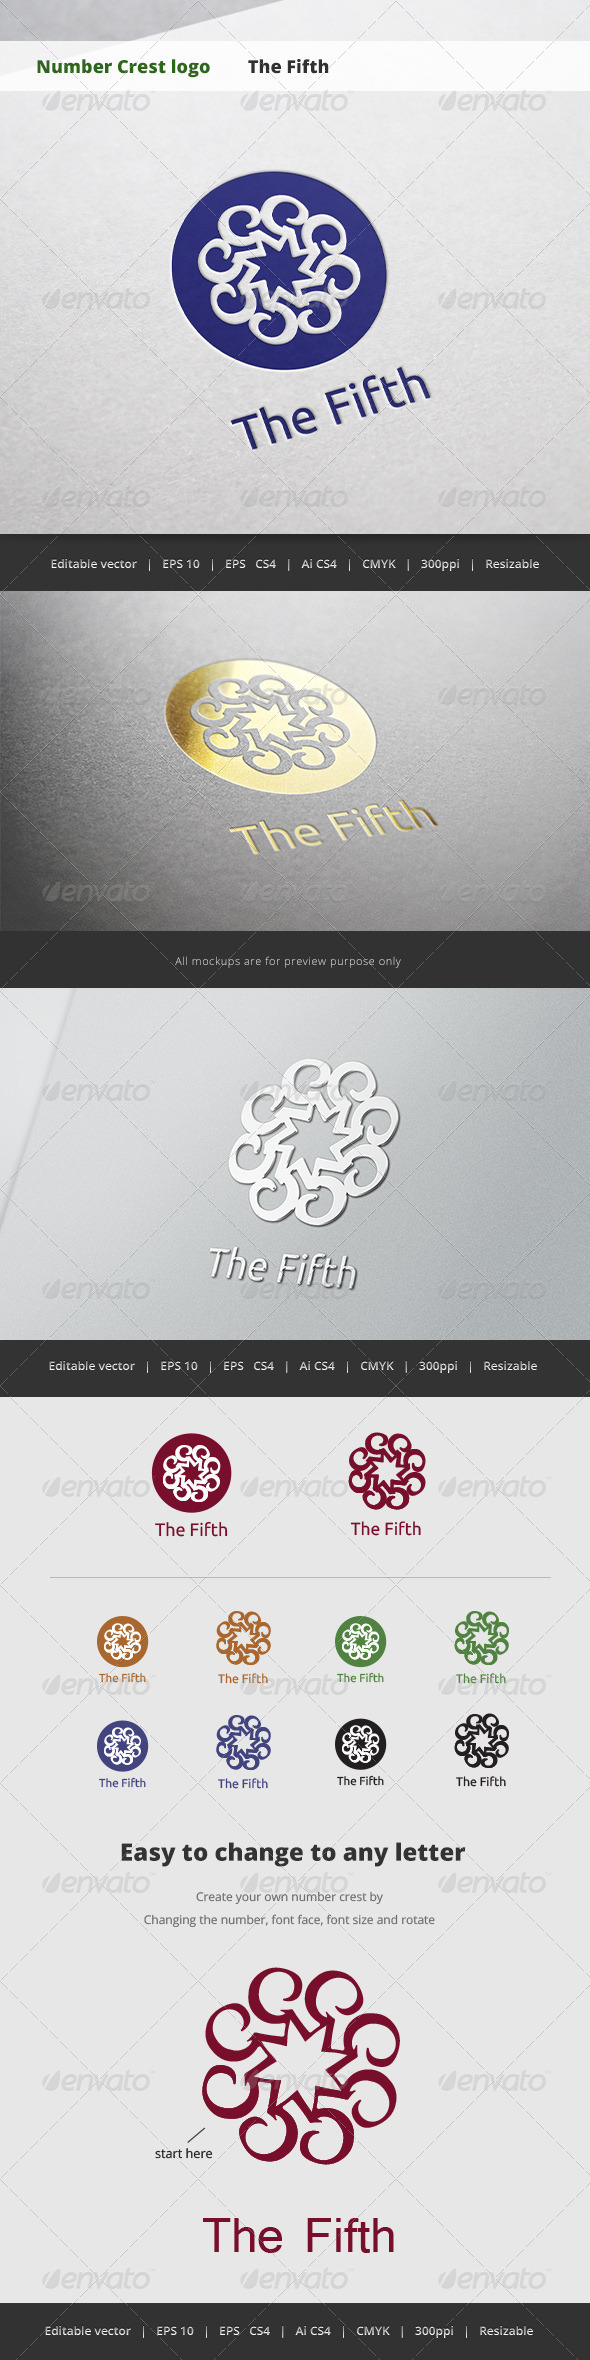 GraphicRiver The Fifth Number Crest Logo 5718695